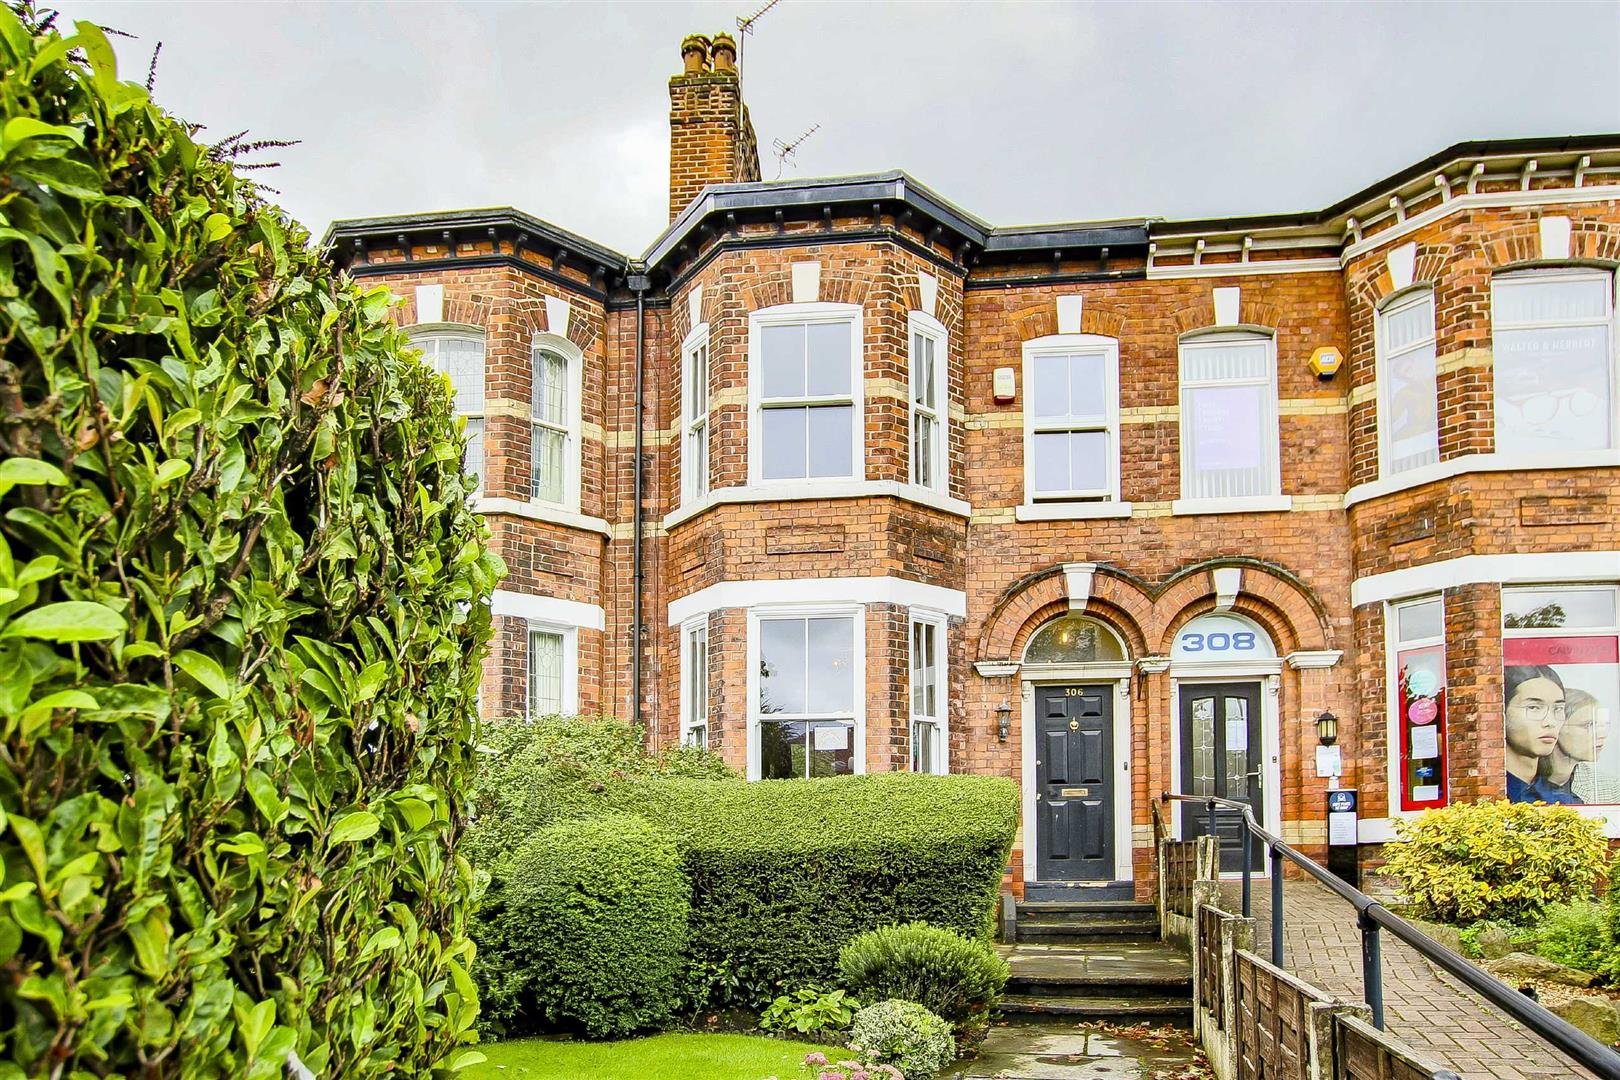 5 Bedroom Terraced House For Sale - Main Image